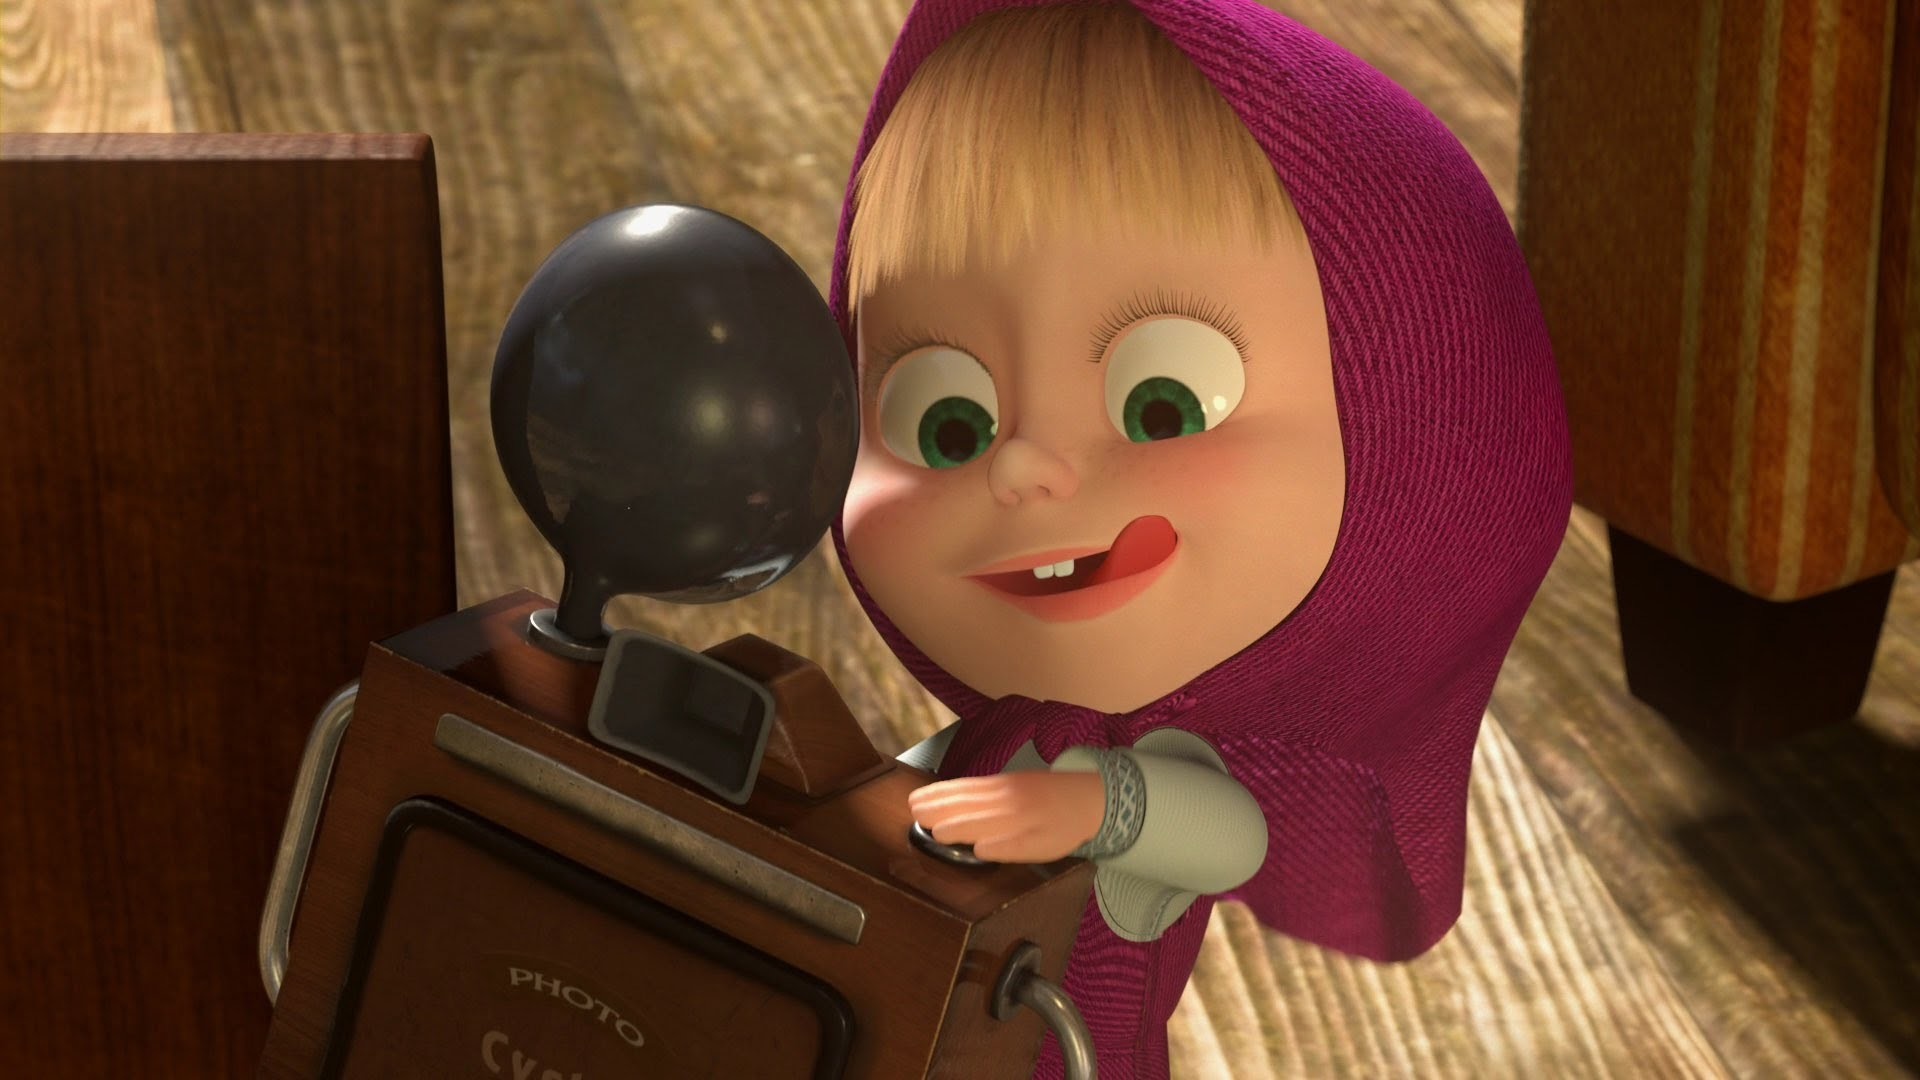 41796 download wallpaper Cartoon, Pictures, Masha And The Bear screensavers and pictures for free